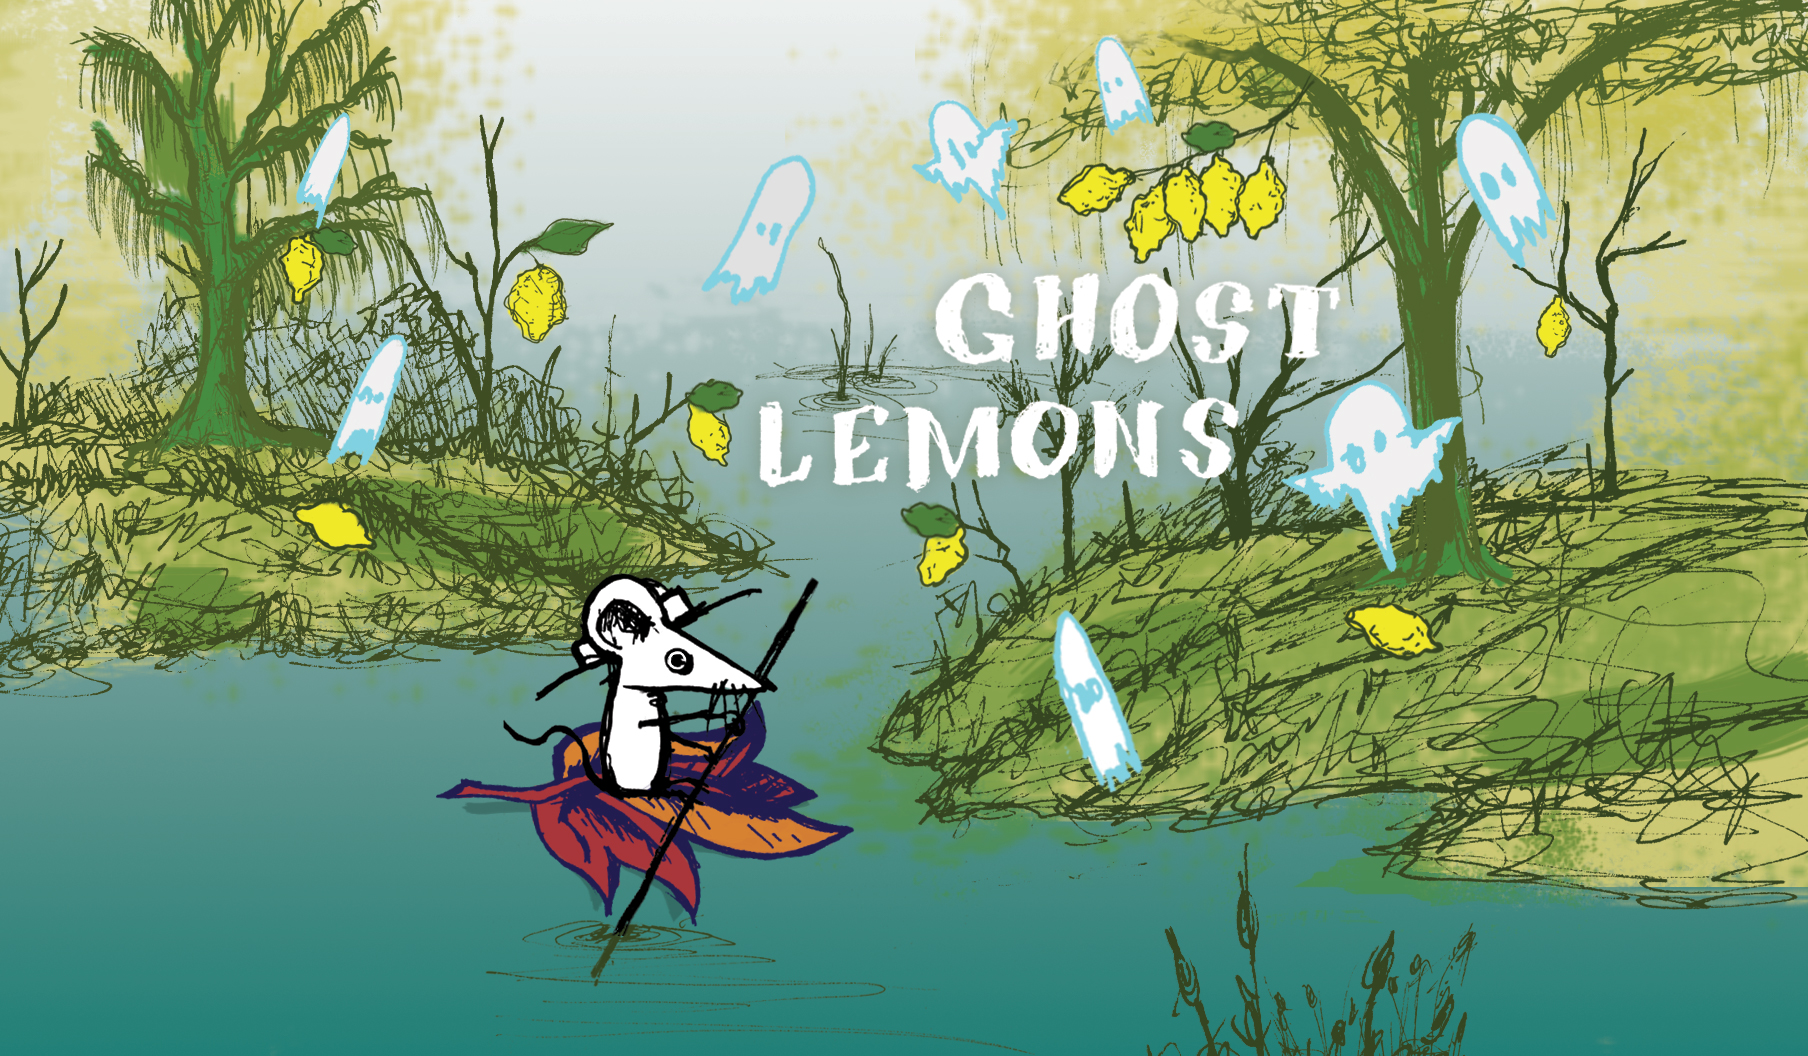 Ghost_Lemons_Art_Only (1).jpg